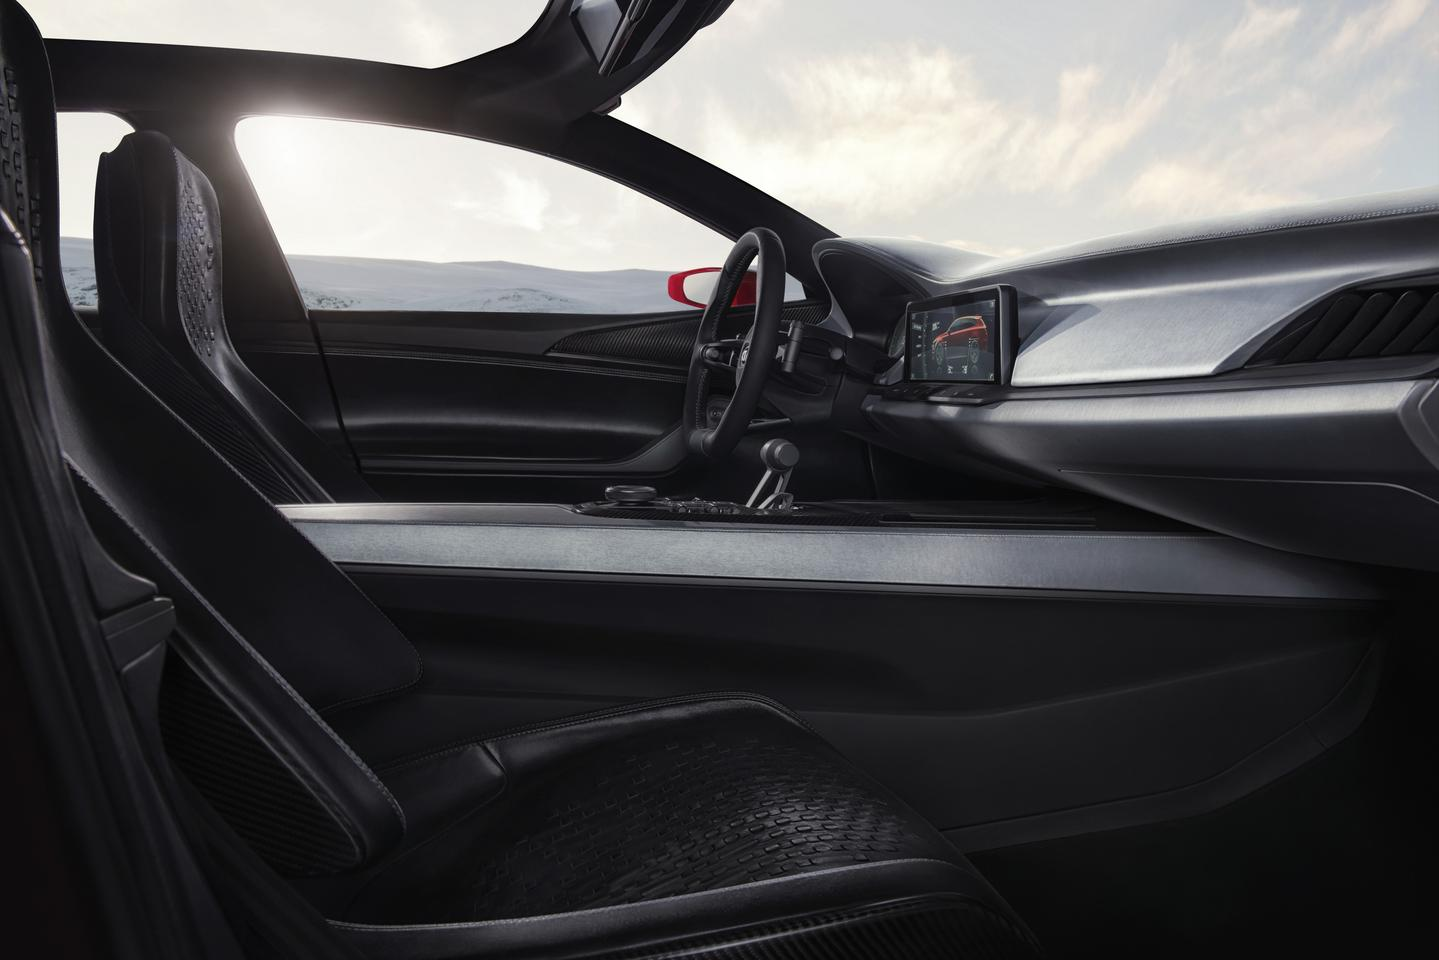 The Sportspace has a sporty interior with widescreen infotainment system